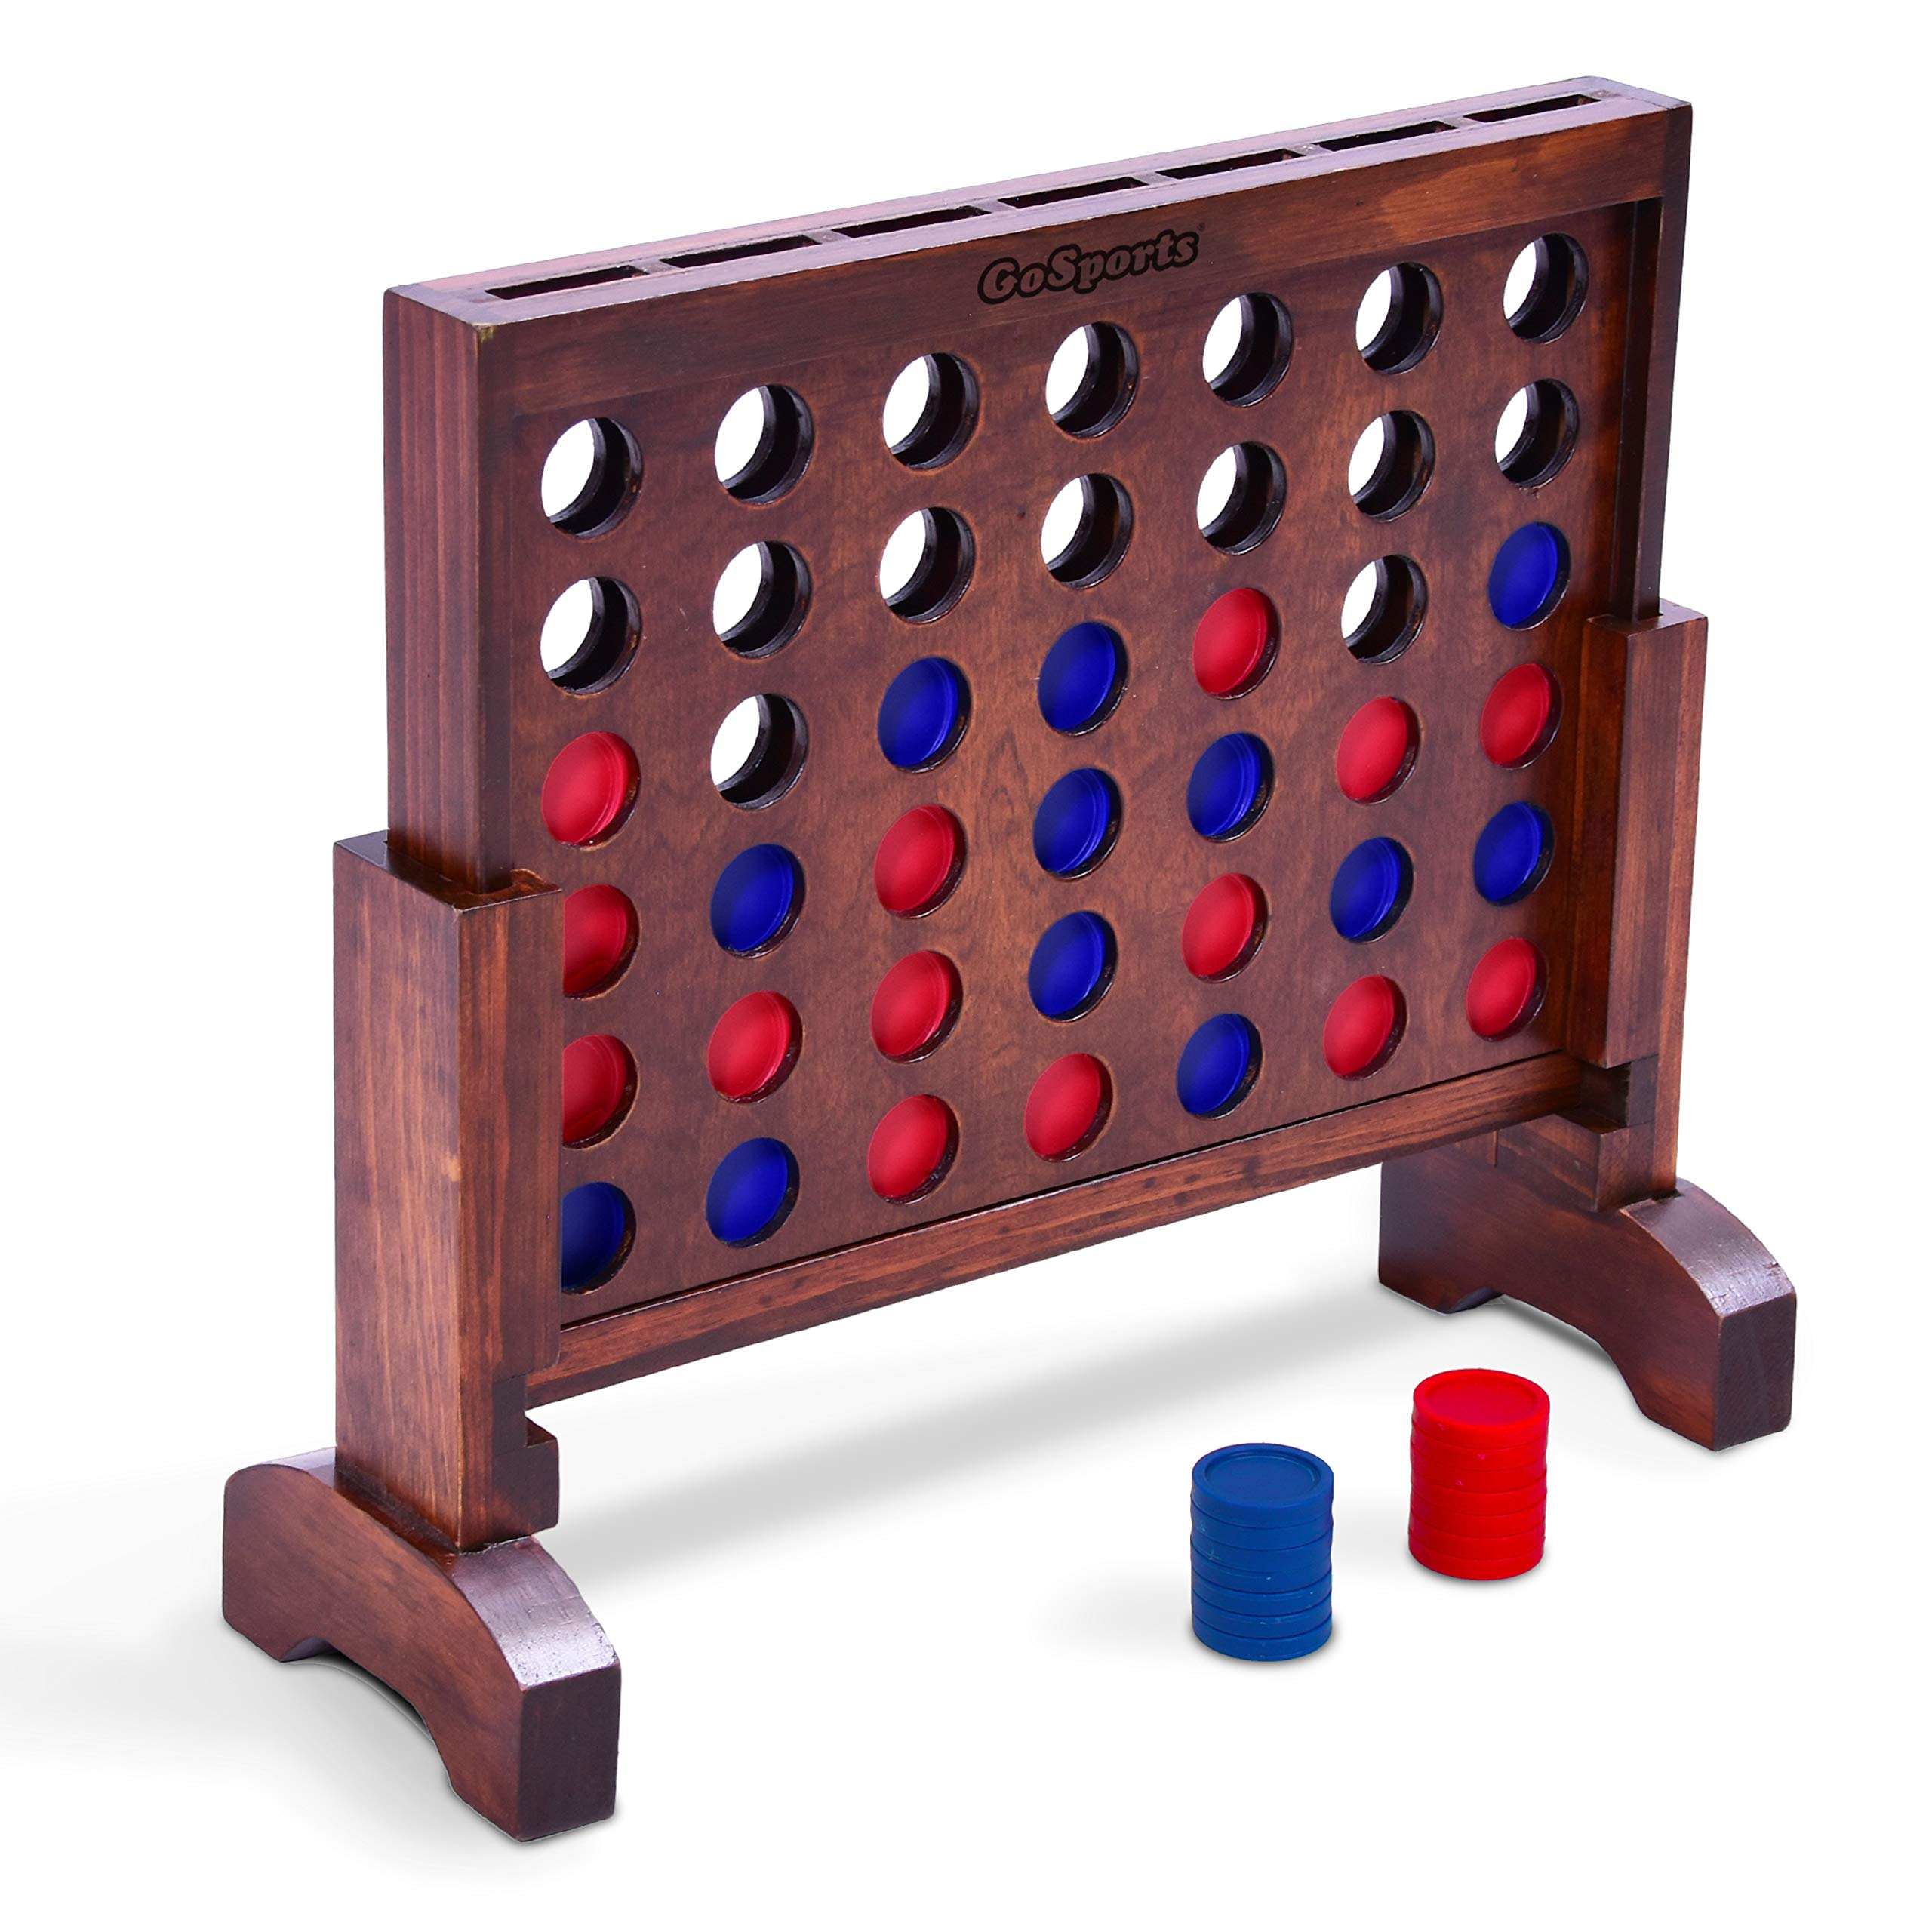 GoSports Premium 4 in a Row Game Dark Wood Stain – 1 Foot Width – with Connect Coins, Portable Case and Rules